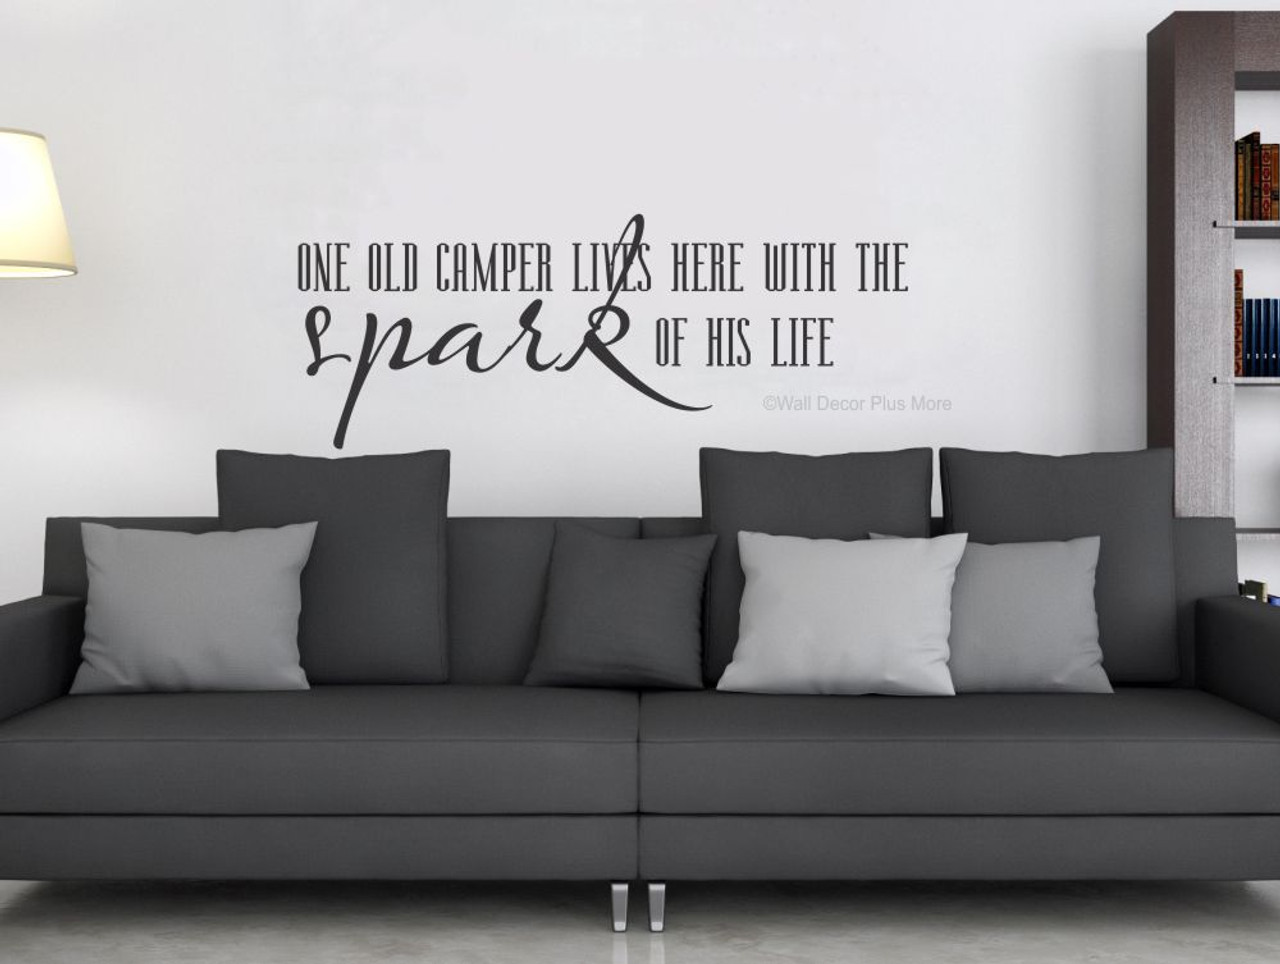 One Old Camper Lives Here with Spark of His Life Wall Decal Quote Spark En Sofa Home Design on ideas design, scalextric design, prius v design, nano design, starline design, sparkle design, air design, sprout design, helping hand design, fusion design, parasail design, boo design, herter brothers design, compression design, gmp design, big wheel design, catalyst design, sprig design, urban planning design, rpm design,